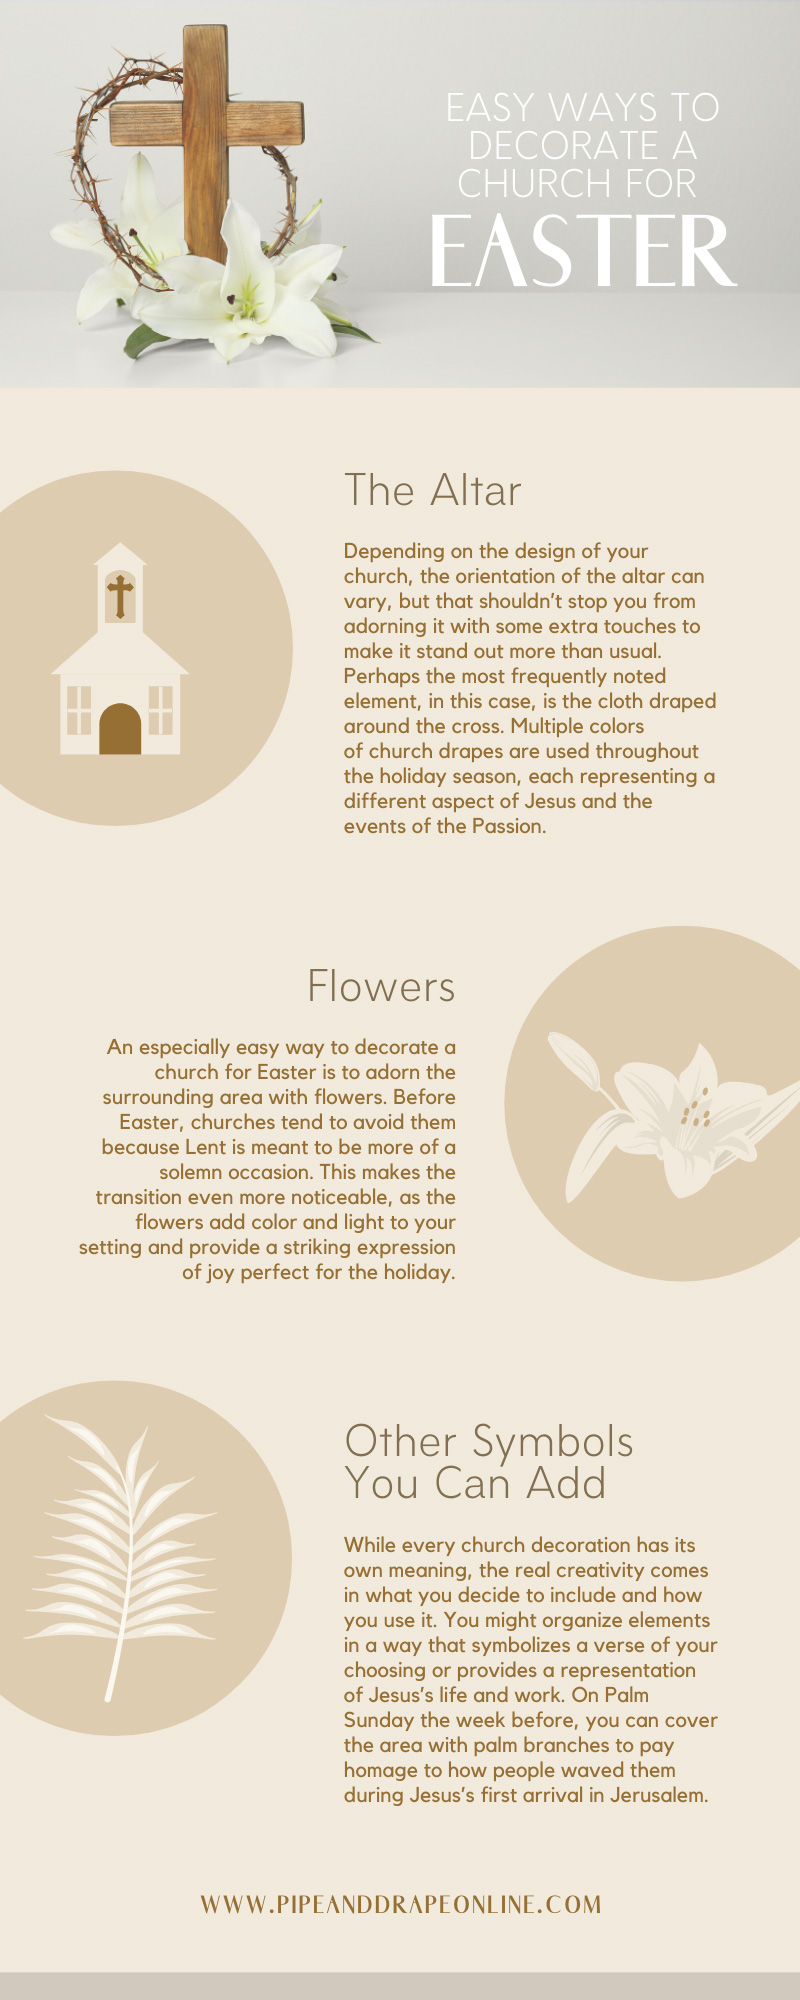 Easy Ways to Decorate a Church for Easter